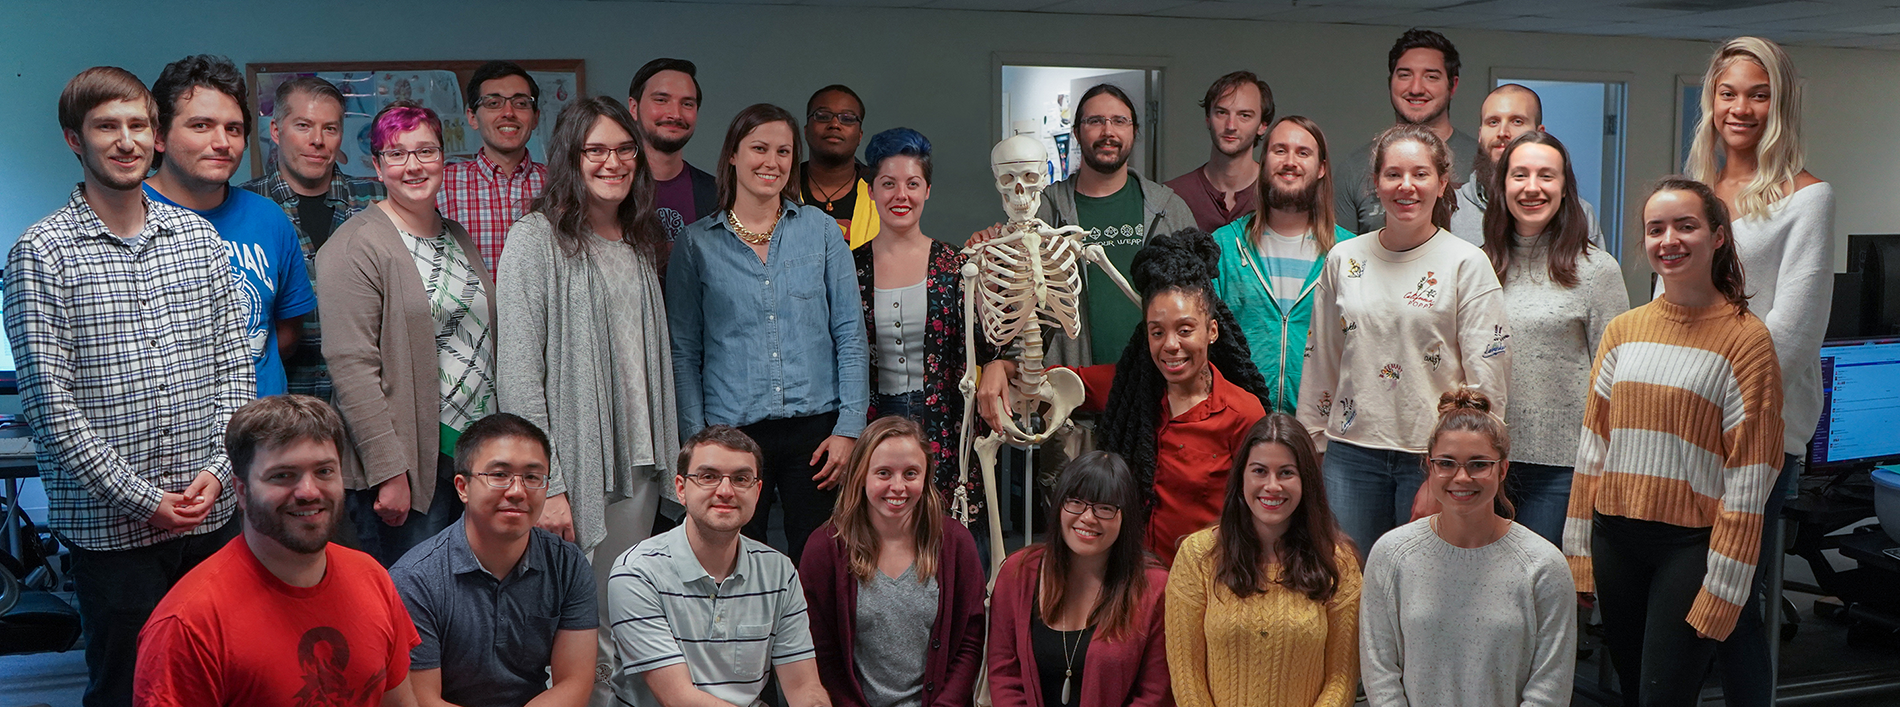 Members of the Visible Body team at the Newton office